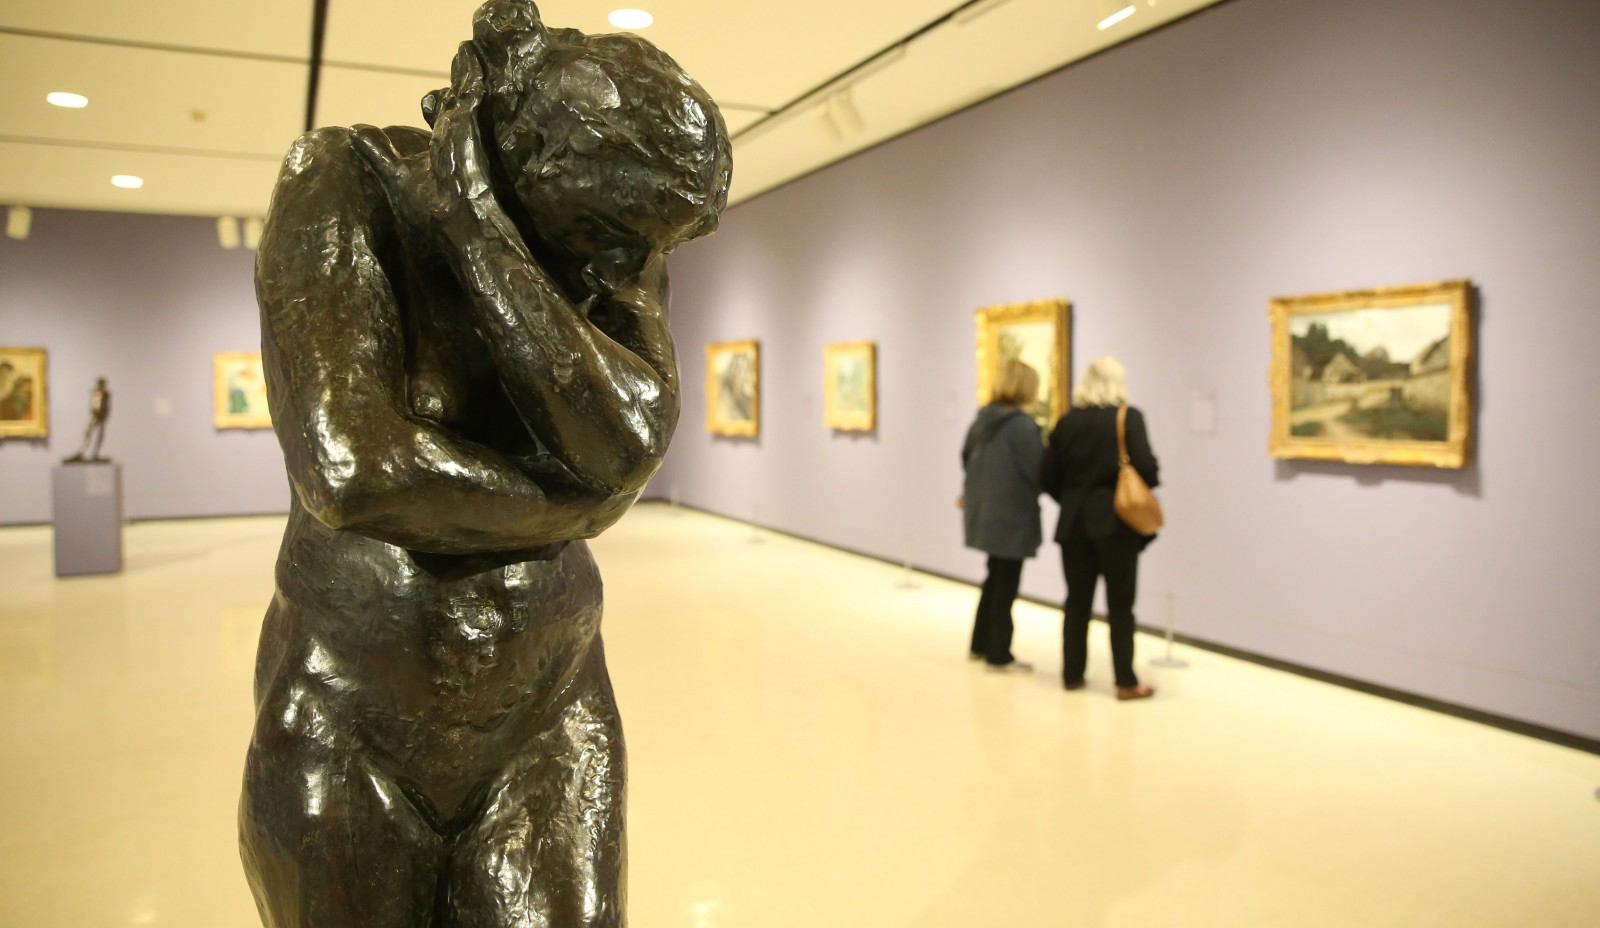 """Meditative moments: """"Eve"""" by Auguste Rodin dominates the floor while visitors to the Albright-Knox look at the Monet exhibit. Below left, sisters Patti and Clare Beaulieu head through the columns into the gallery. (Sharon Cantillon/Buffalo News)"""